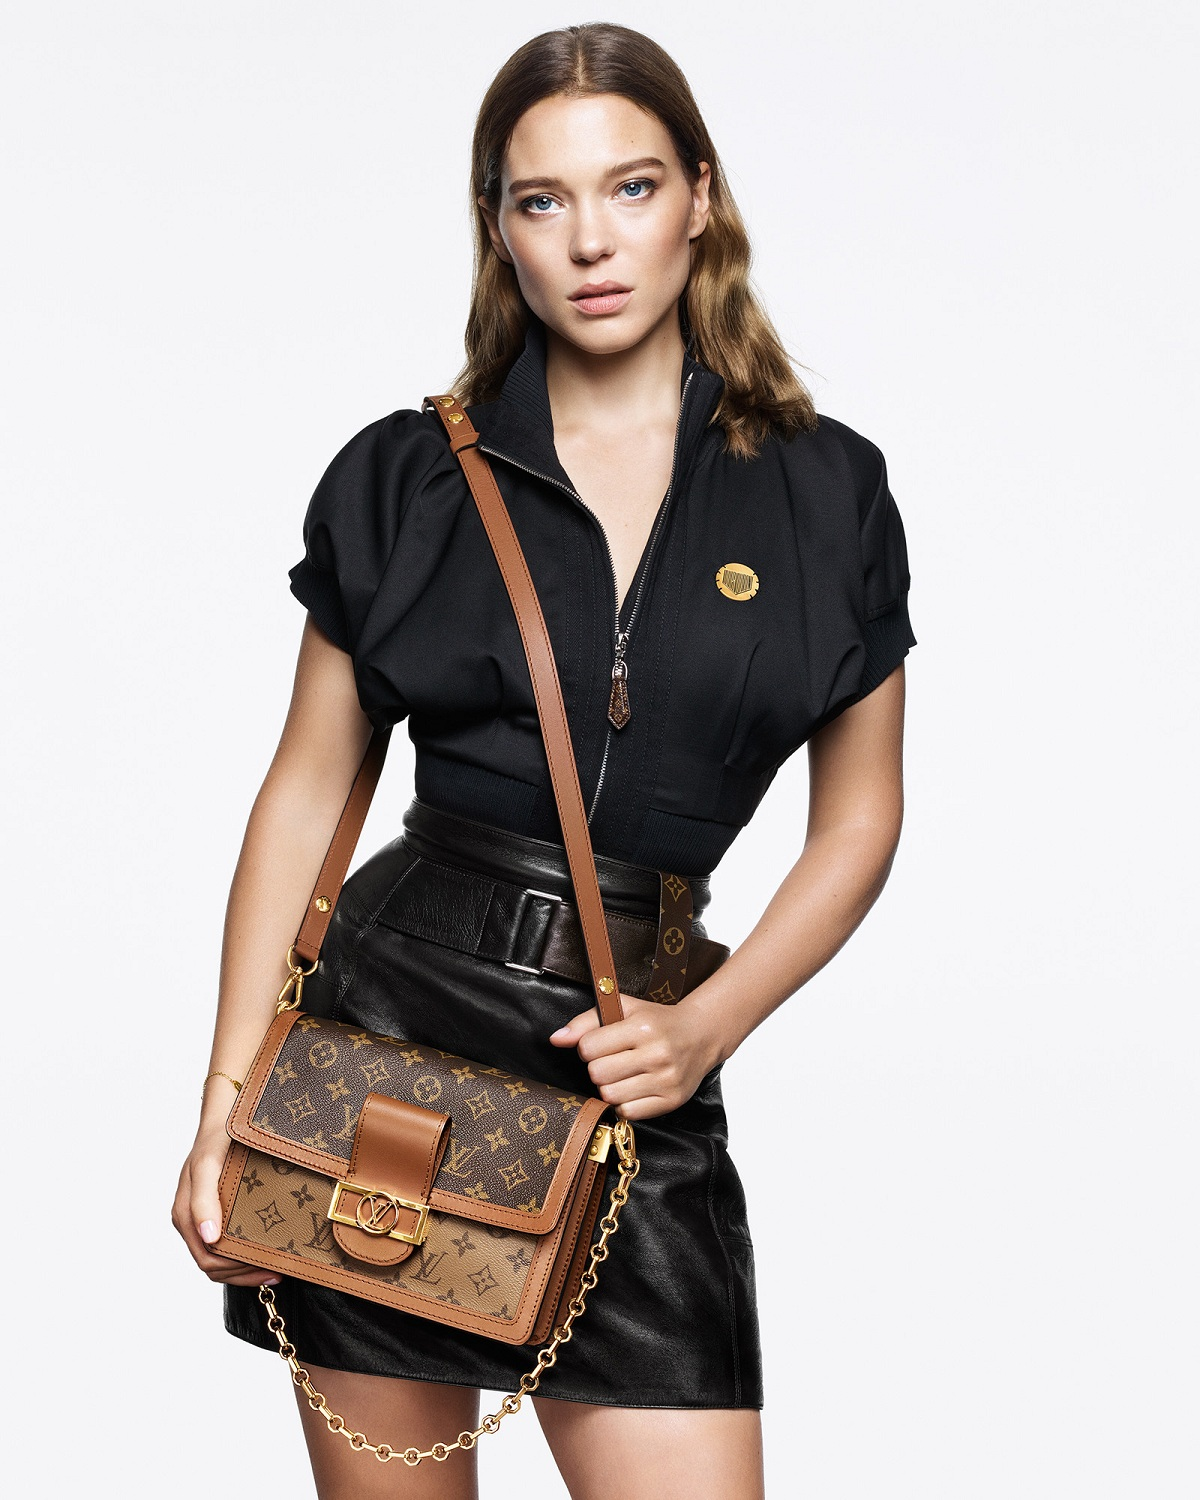 Louis Vuitton New Classics Fashionela